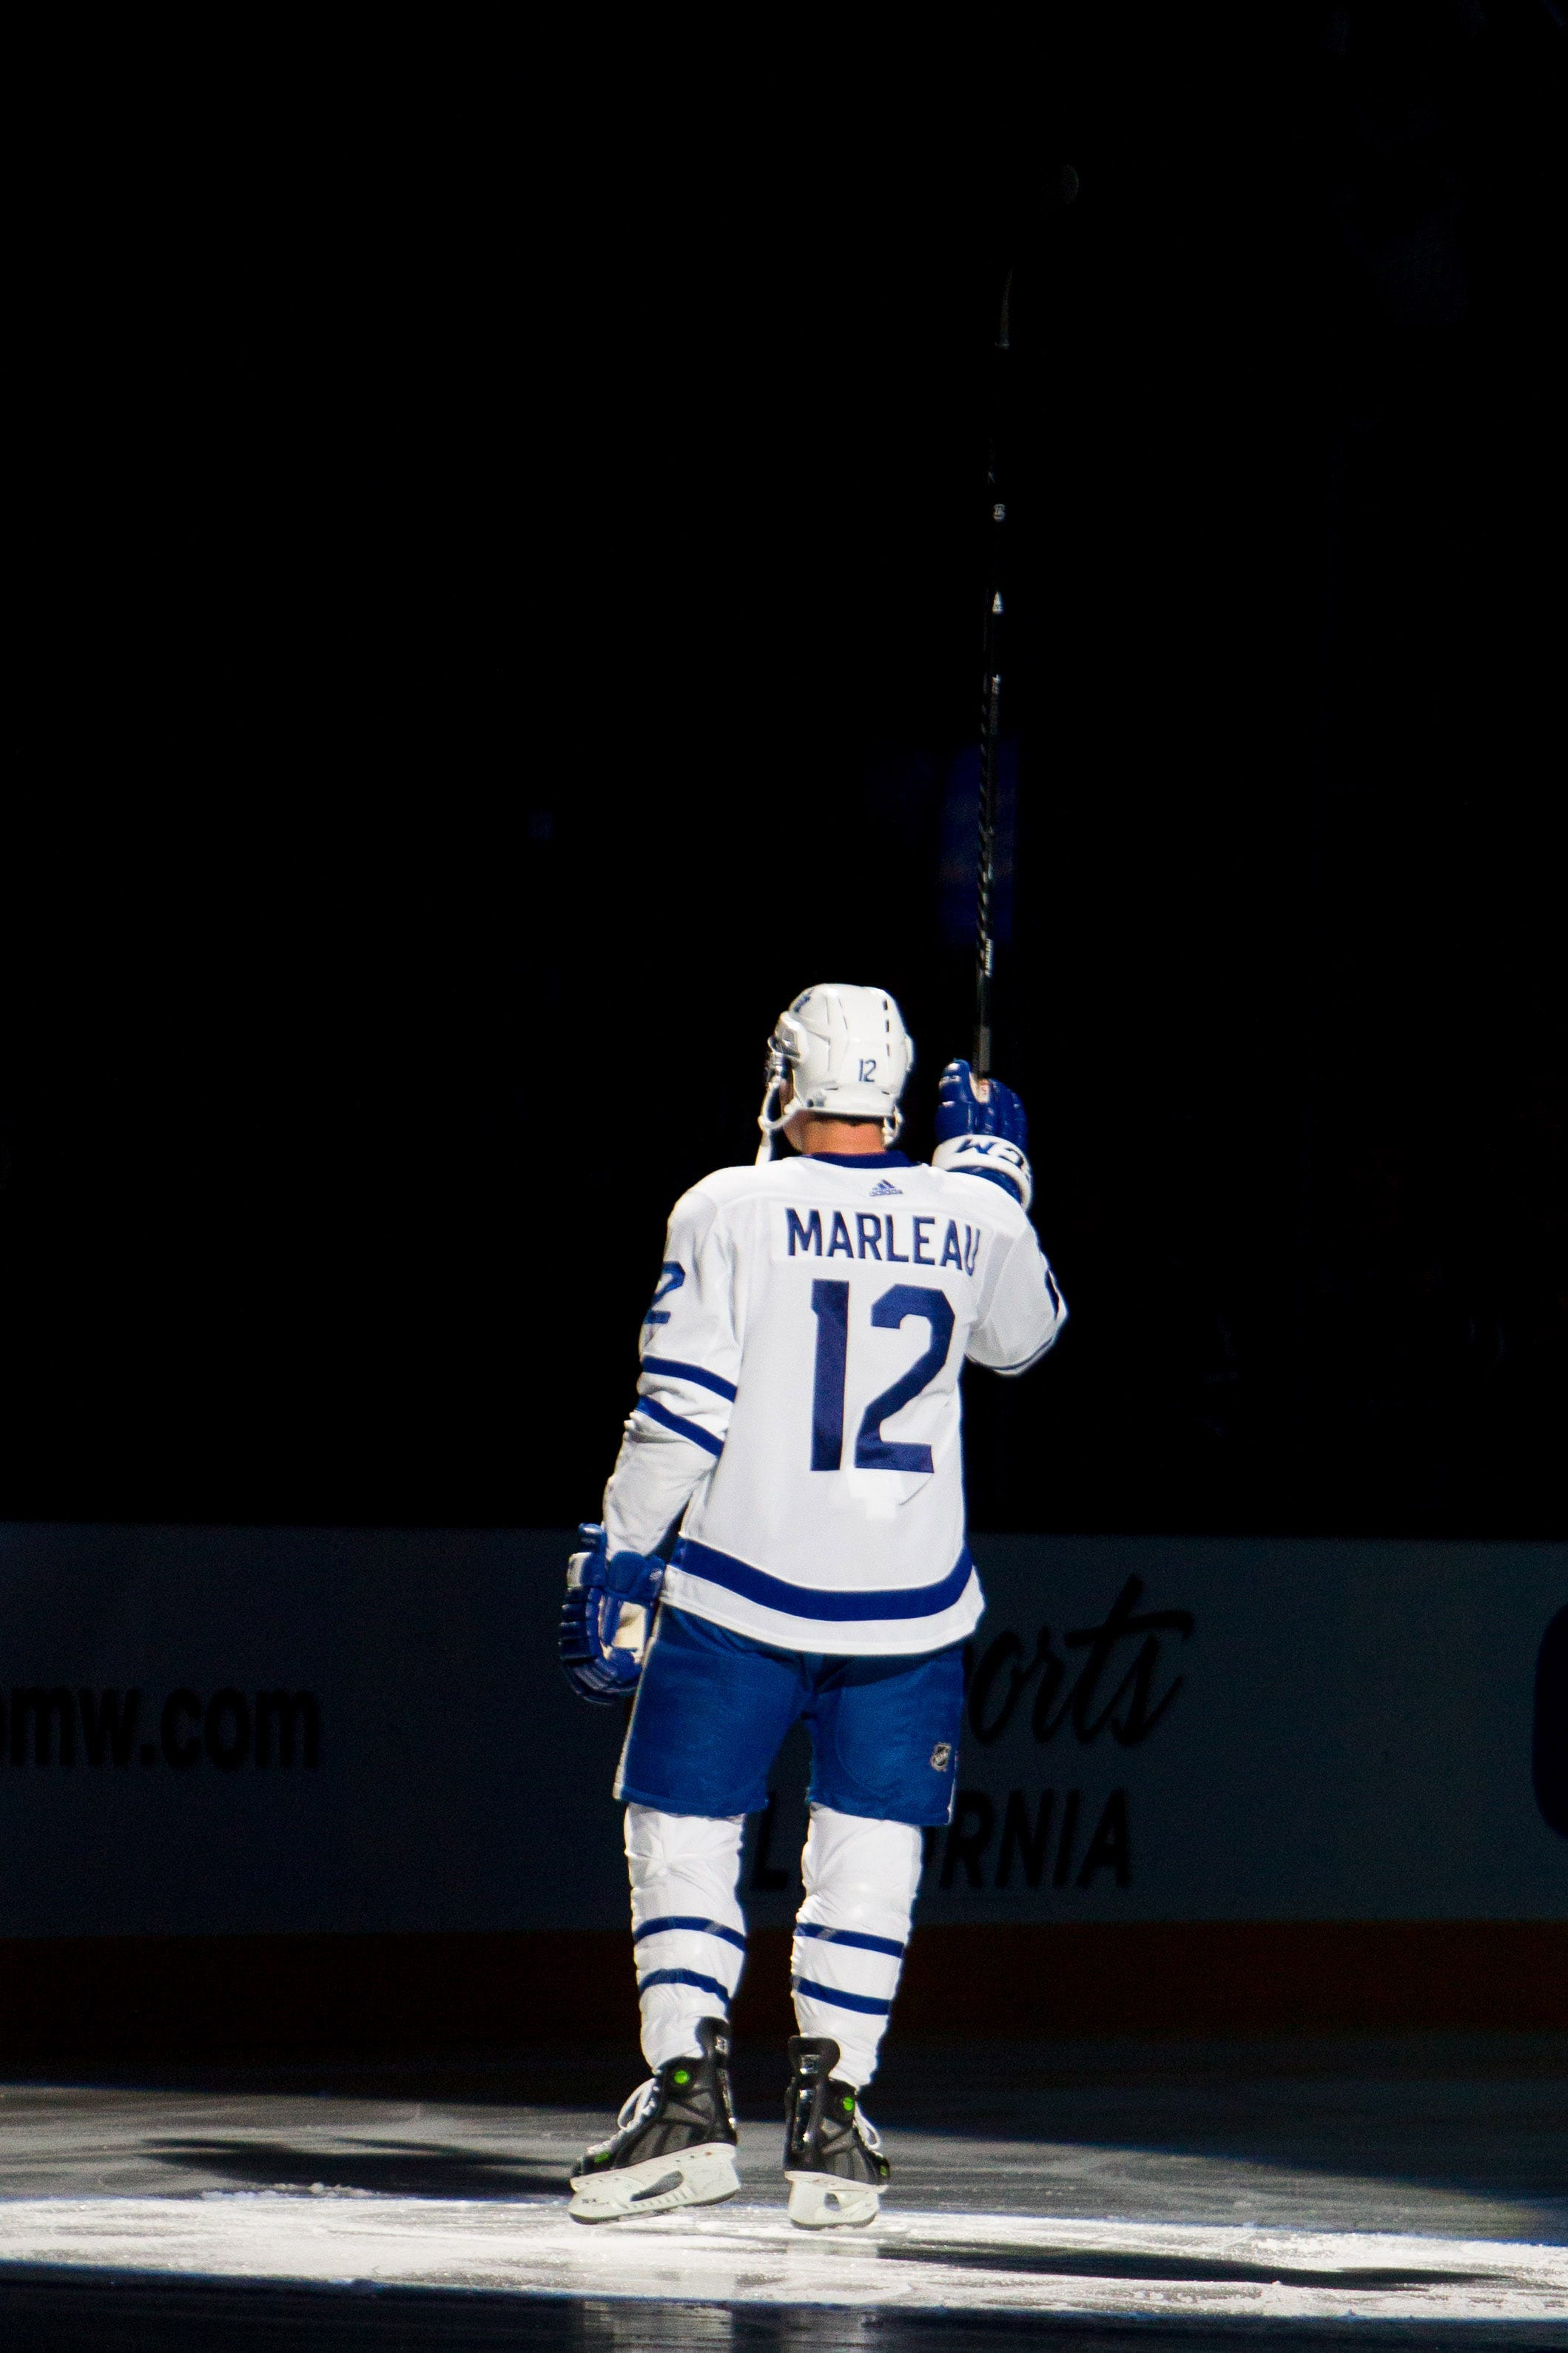 Patrick Marleau honored by Sharks with moving pregame ceremony in return to San Jose